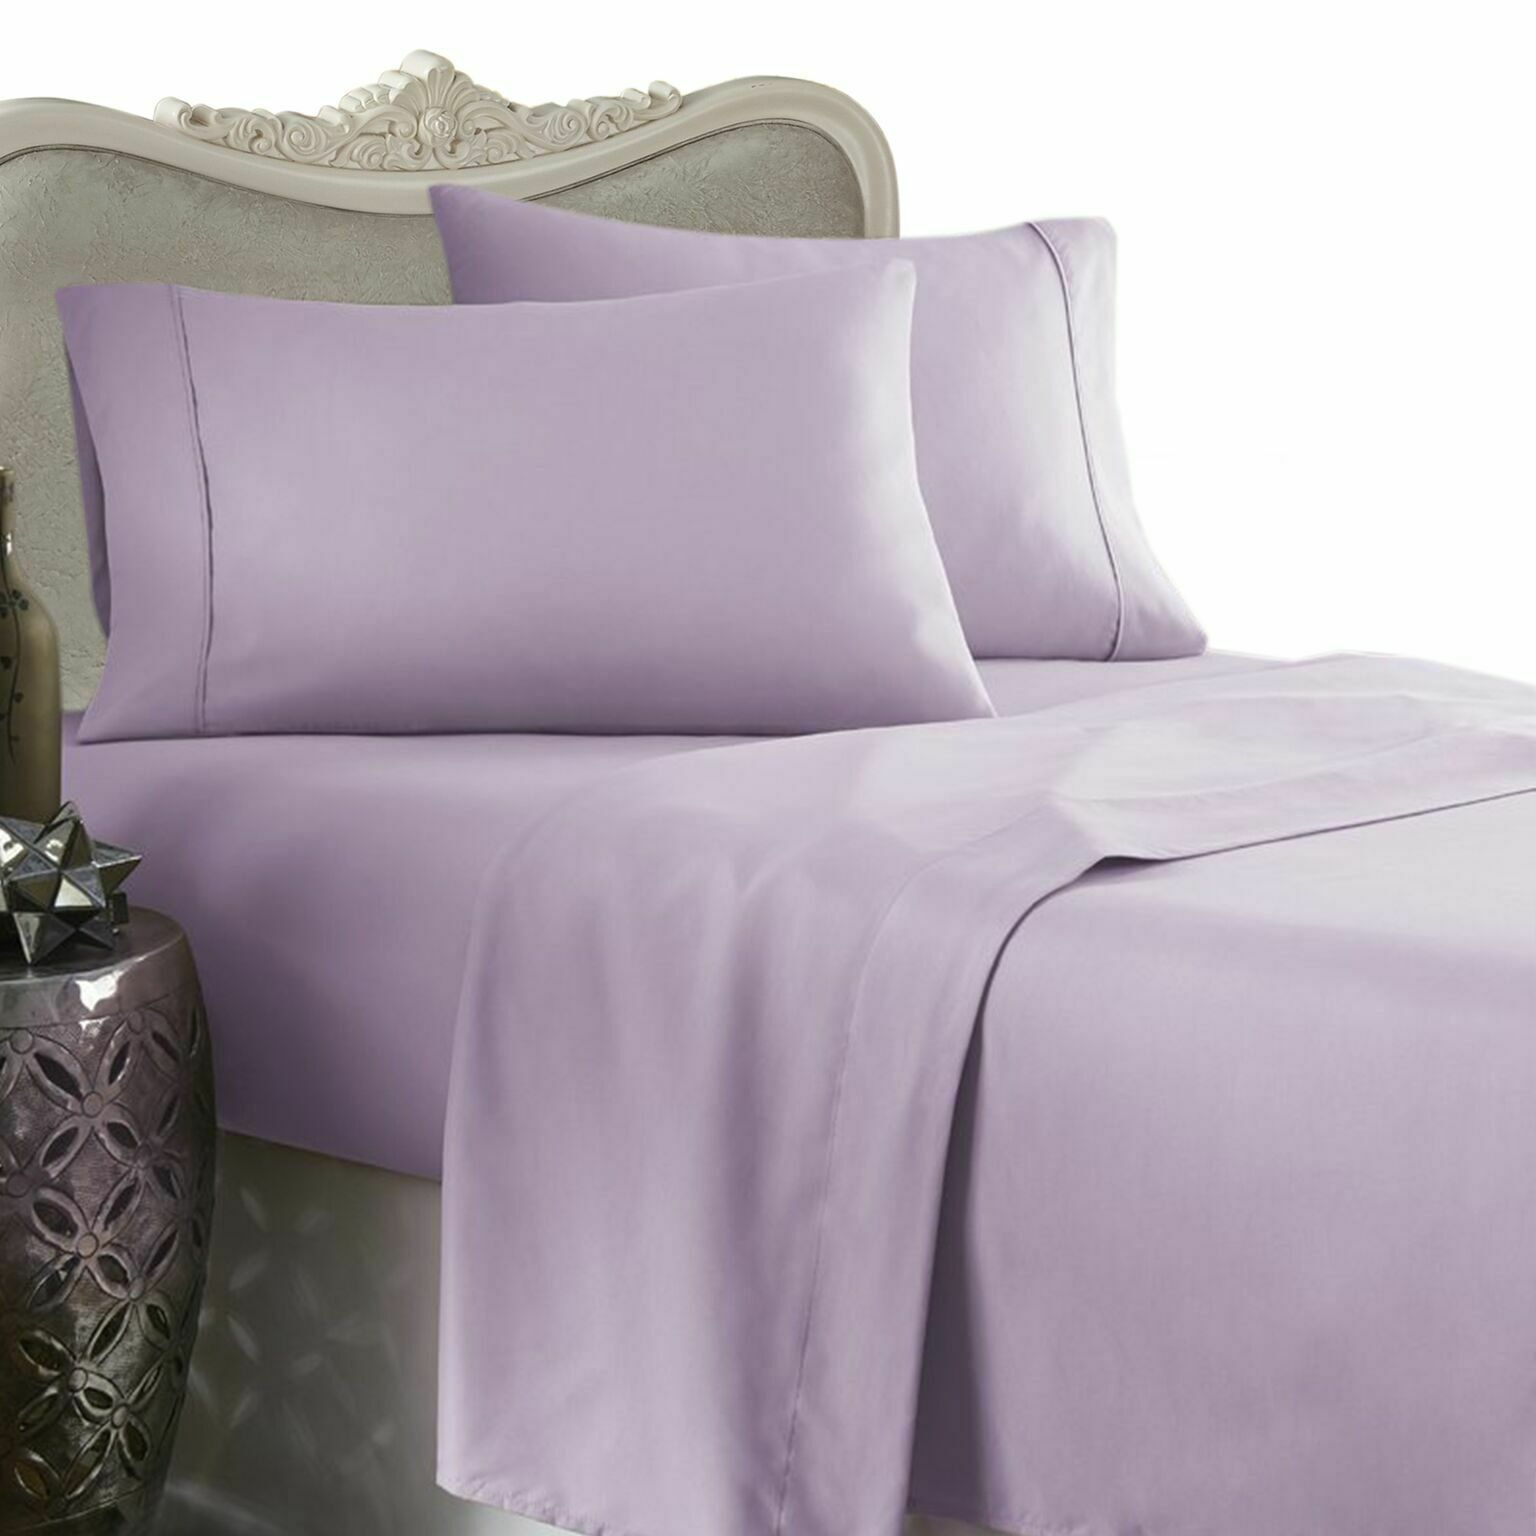 1200 Thread Count 100% Egyptian Cotton Sheet Set, 1200TC, QUEEN, Lavender Solid